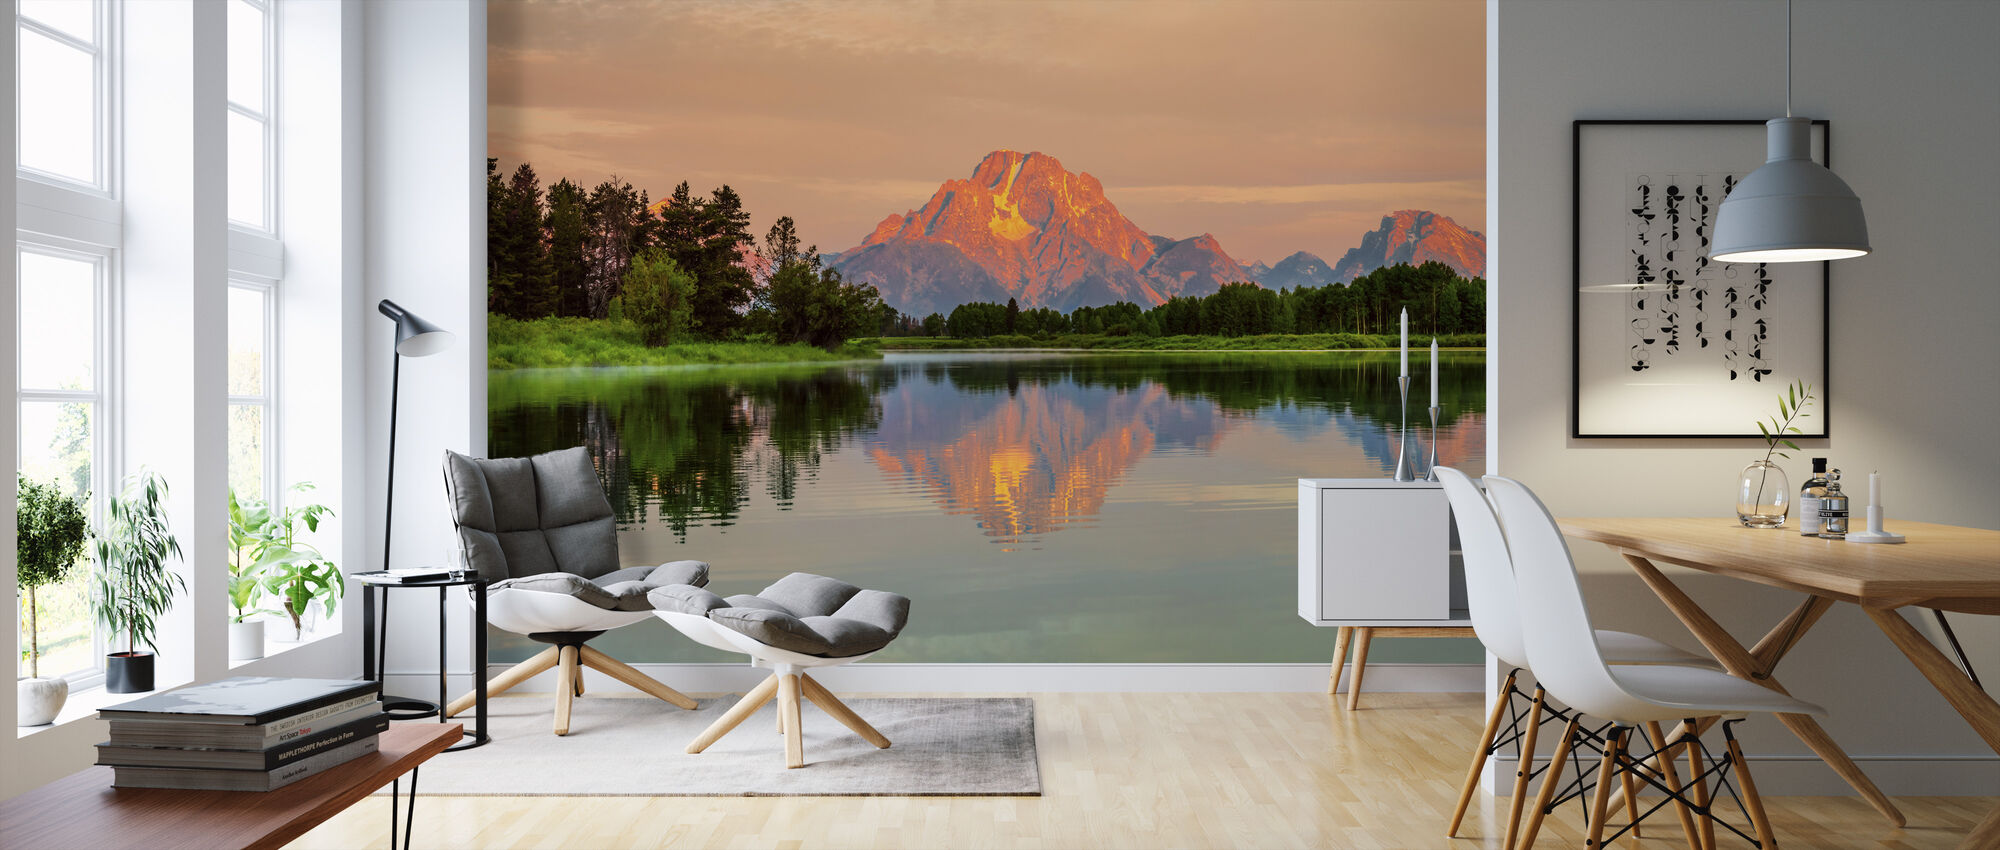 Grand Teton Sunrise - Wallpaper - Living Room